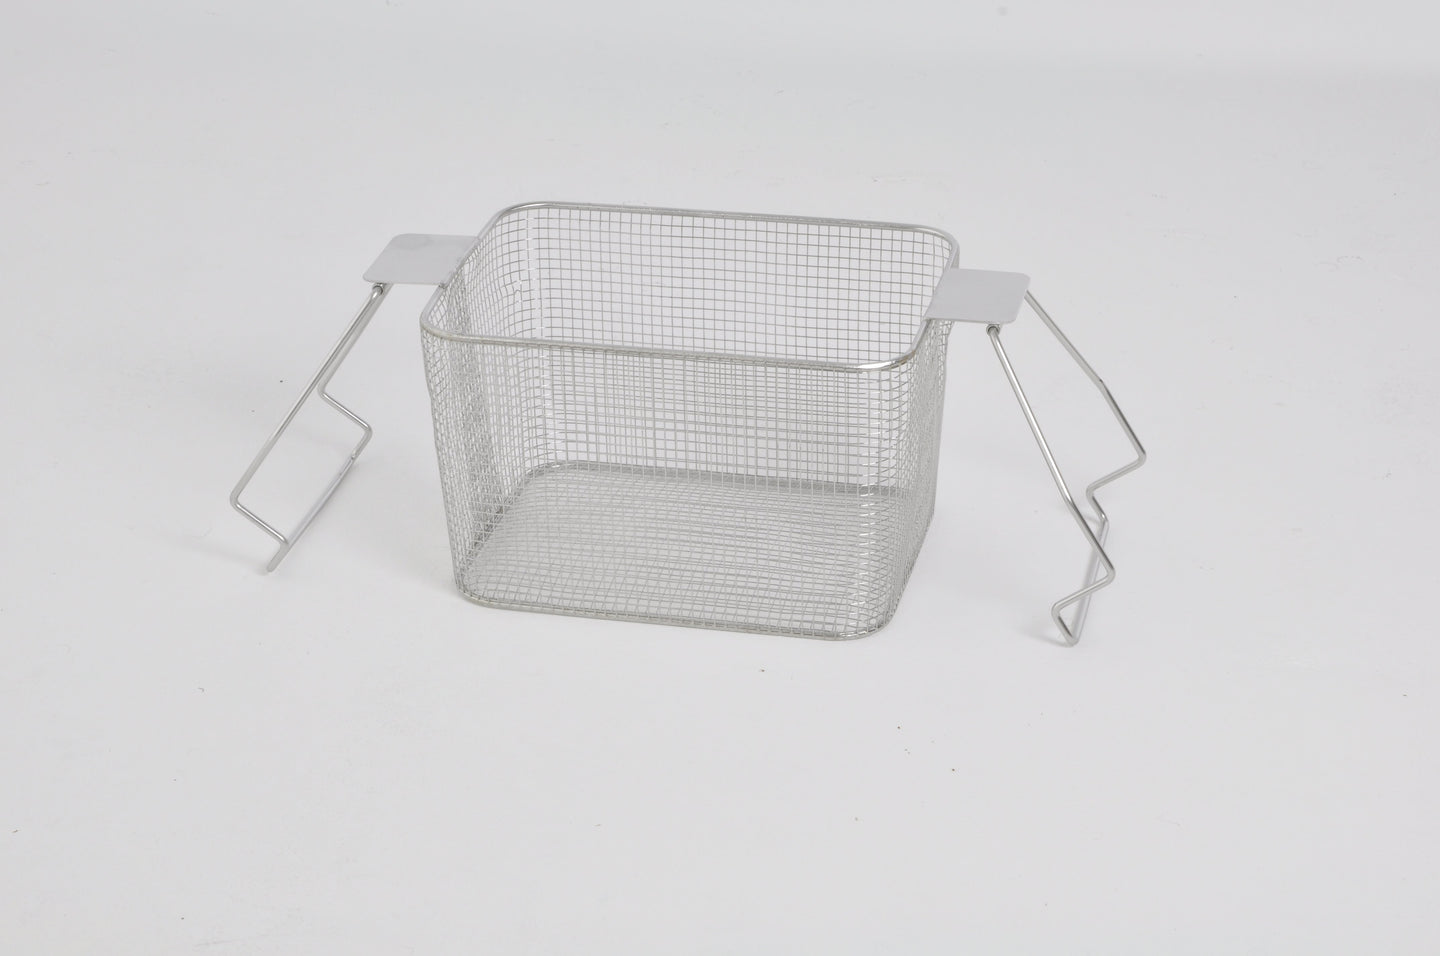 Crest Stainless Steel Mesh Basket For P1100 | SSMB1100DH - leadsonics